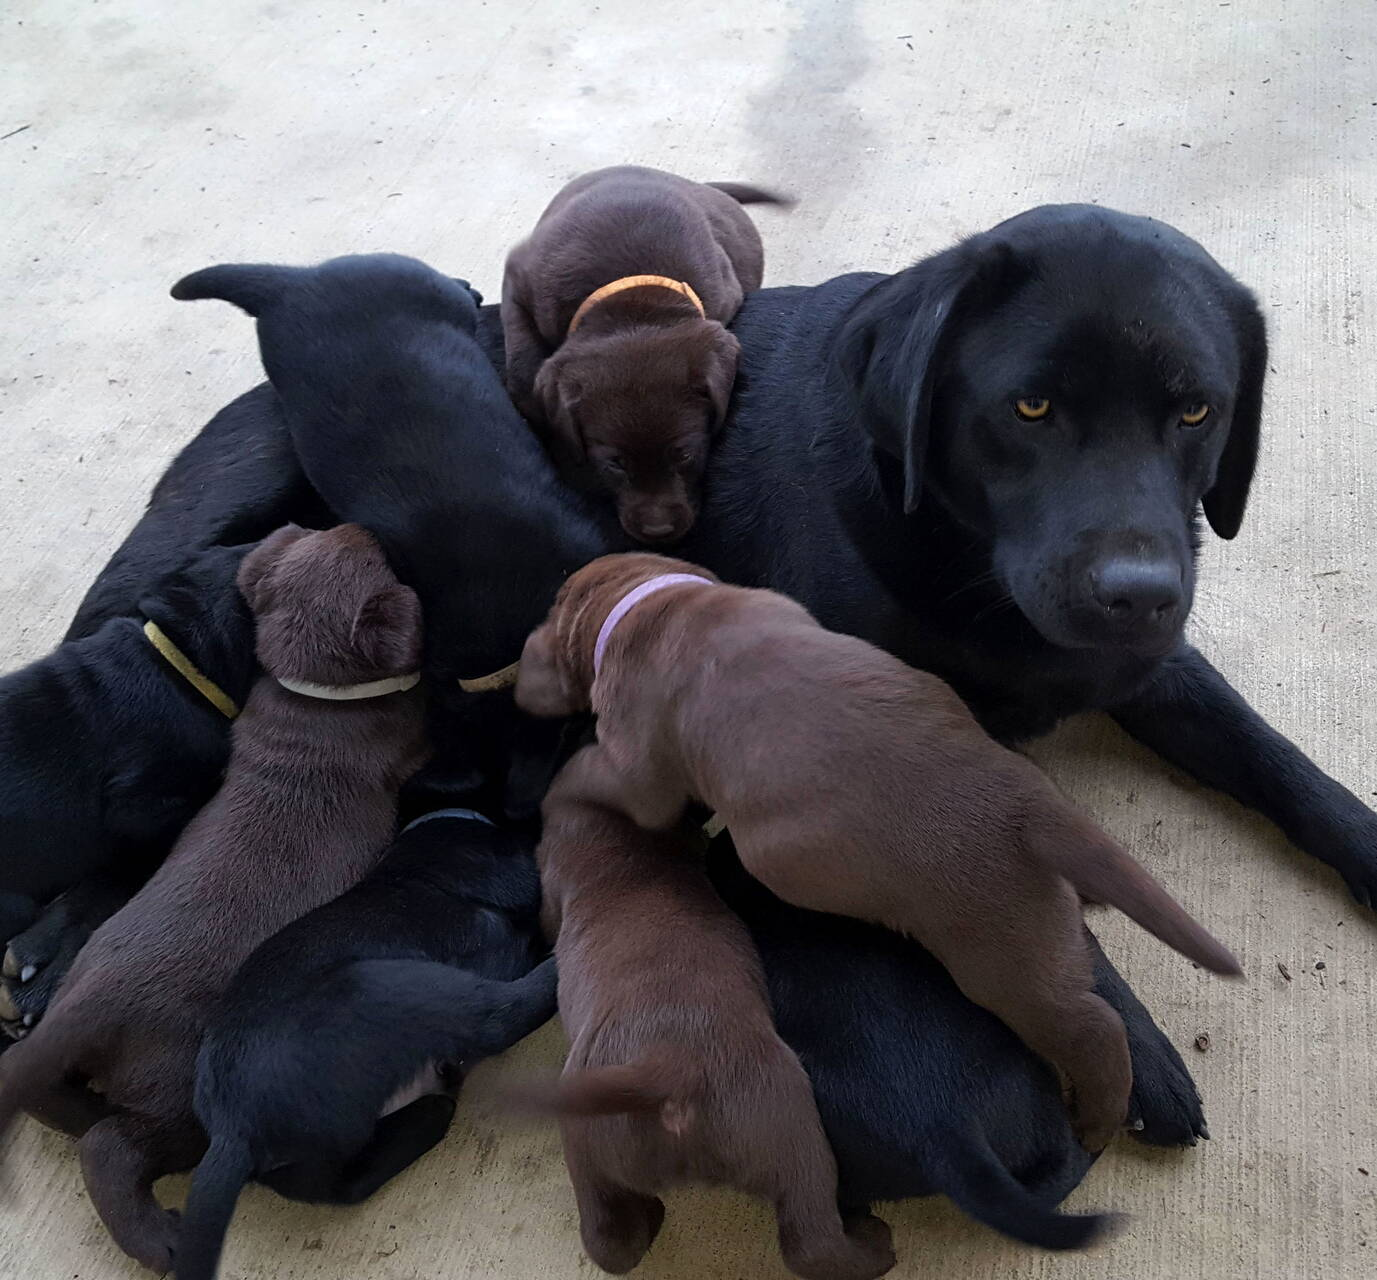 Chocolate and black labradors-Feb 2019-15.jpg